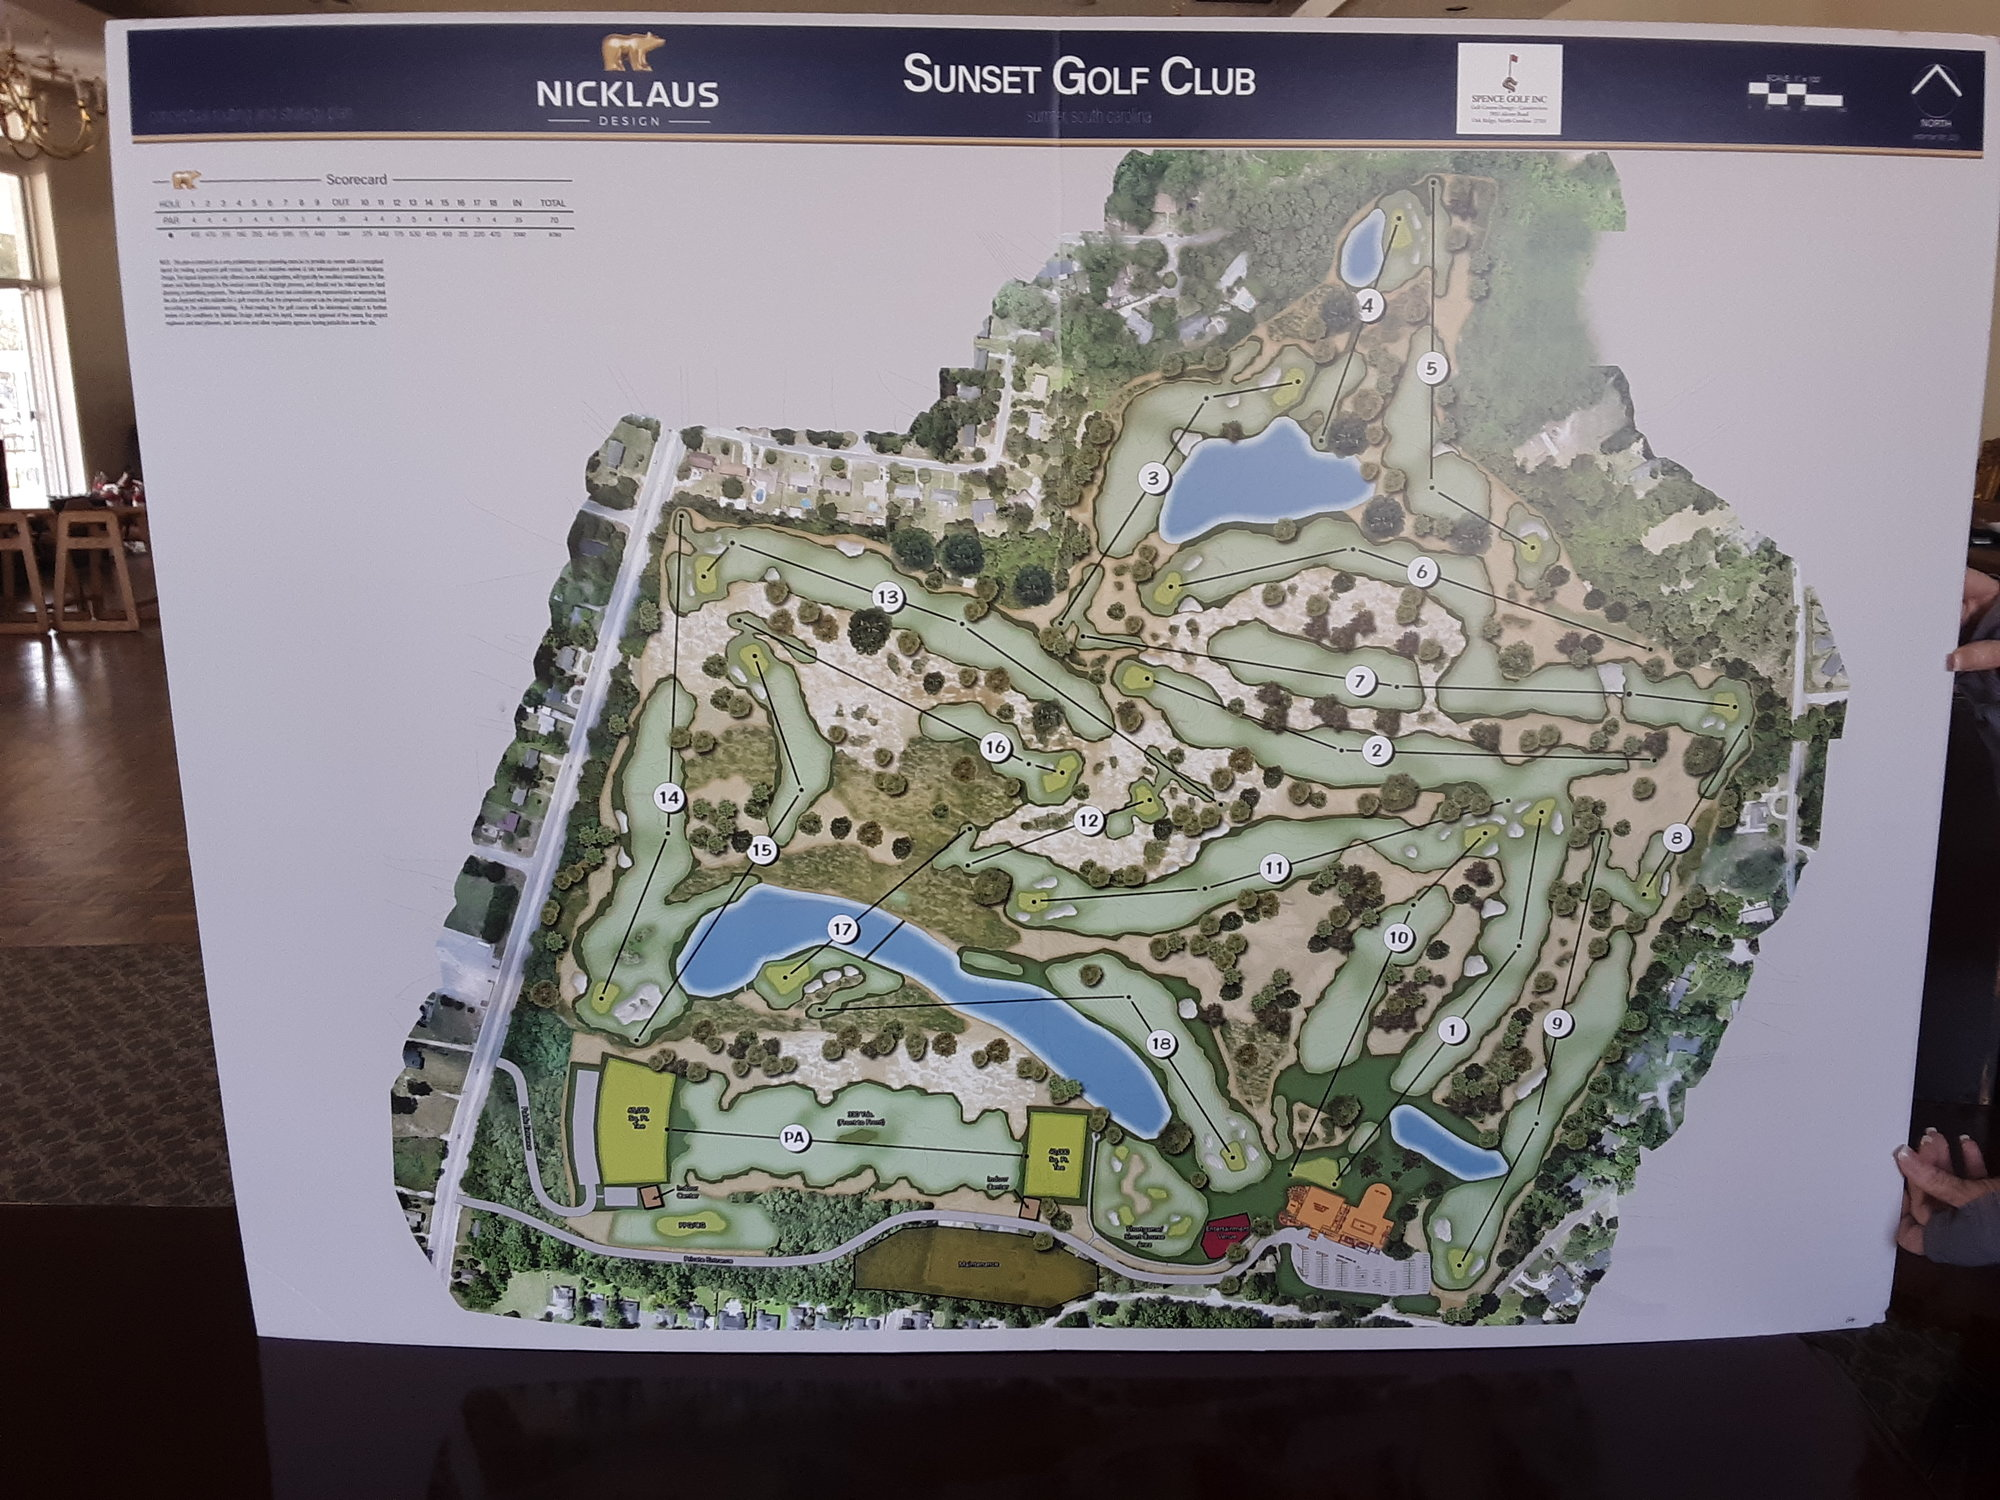 Golf course renderings were completed by Jack Nicklaus II and Kris Spence Golf Design.